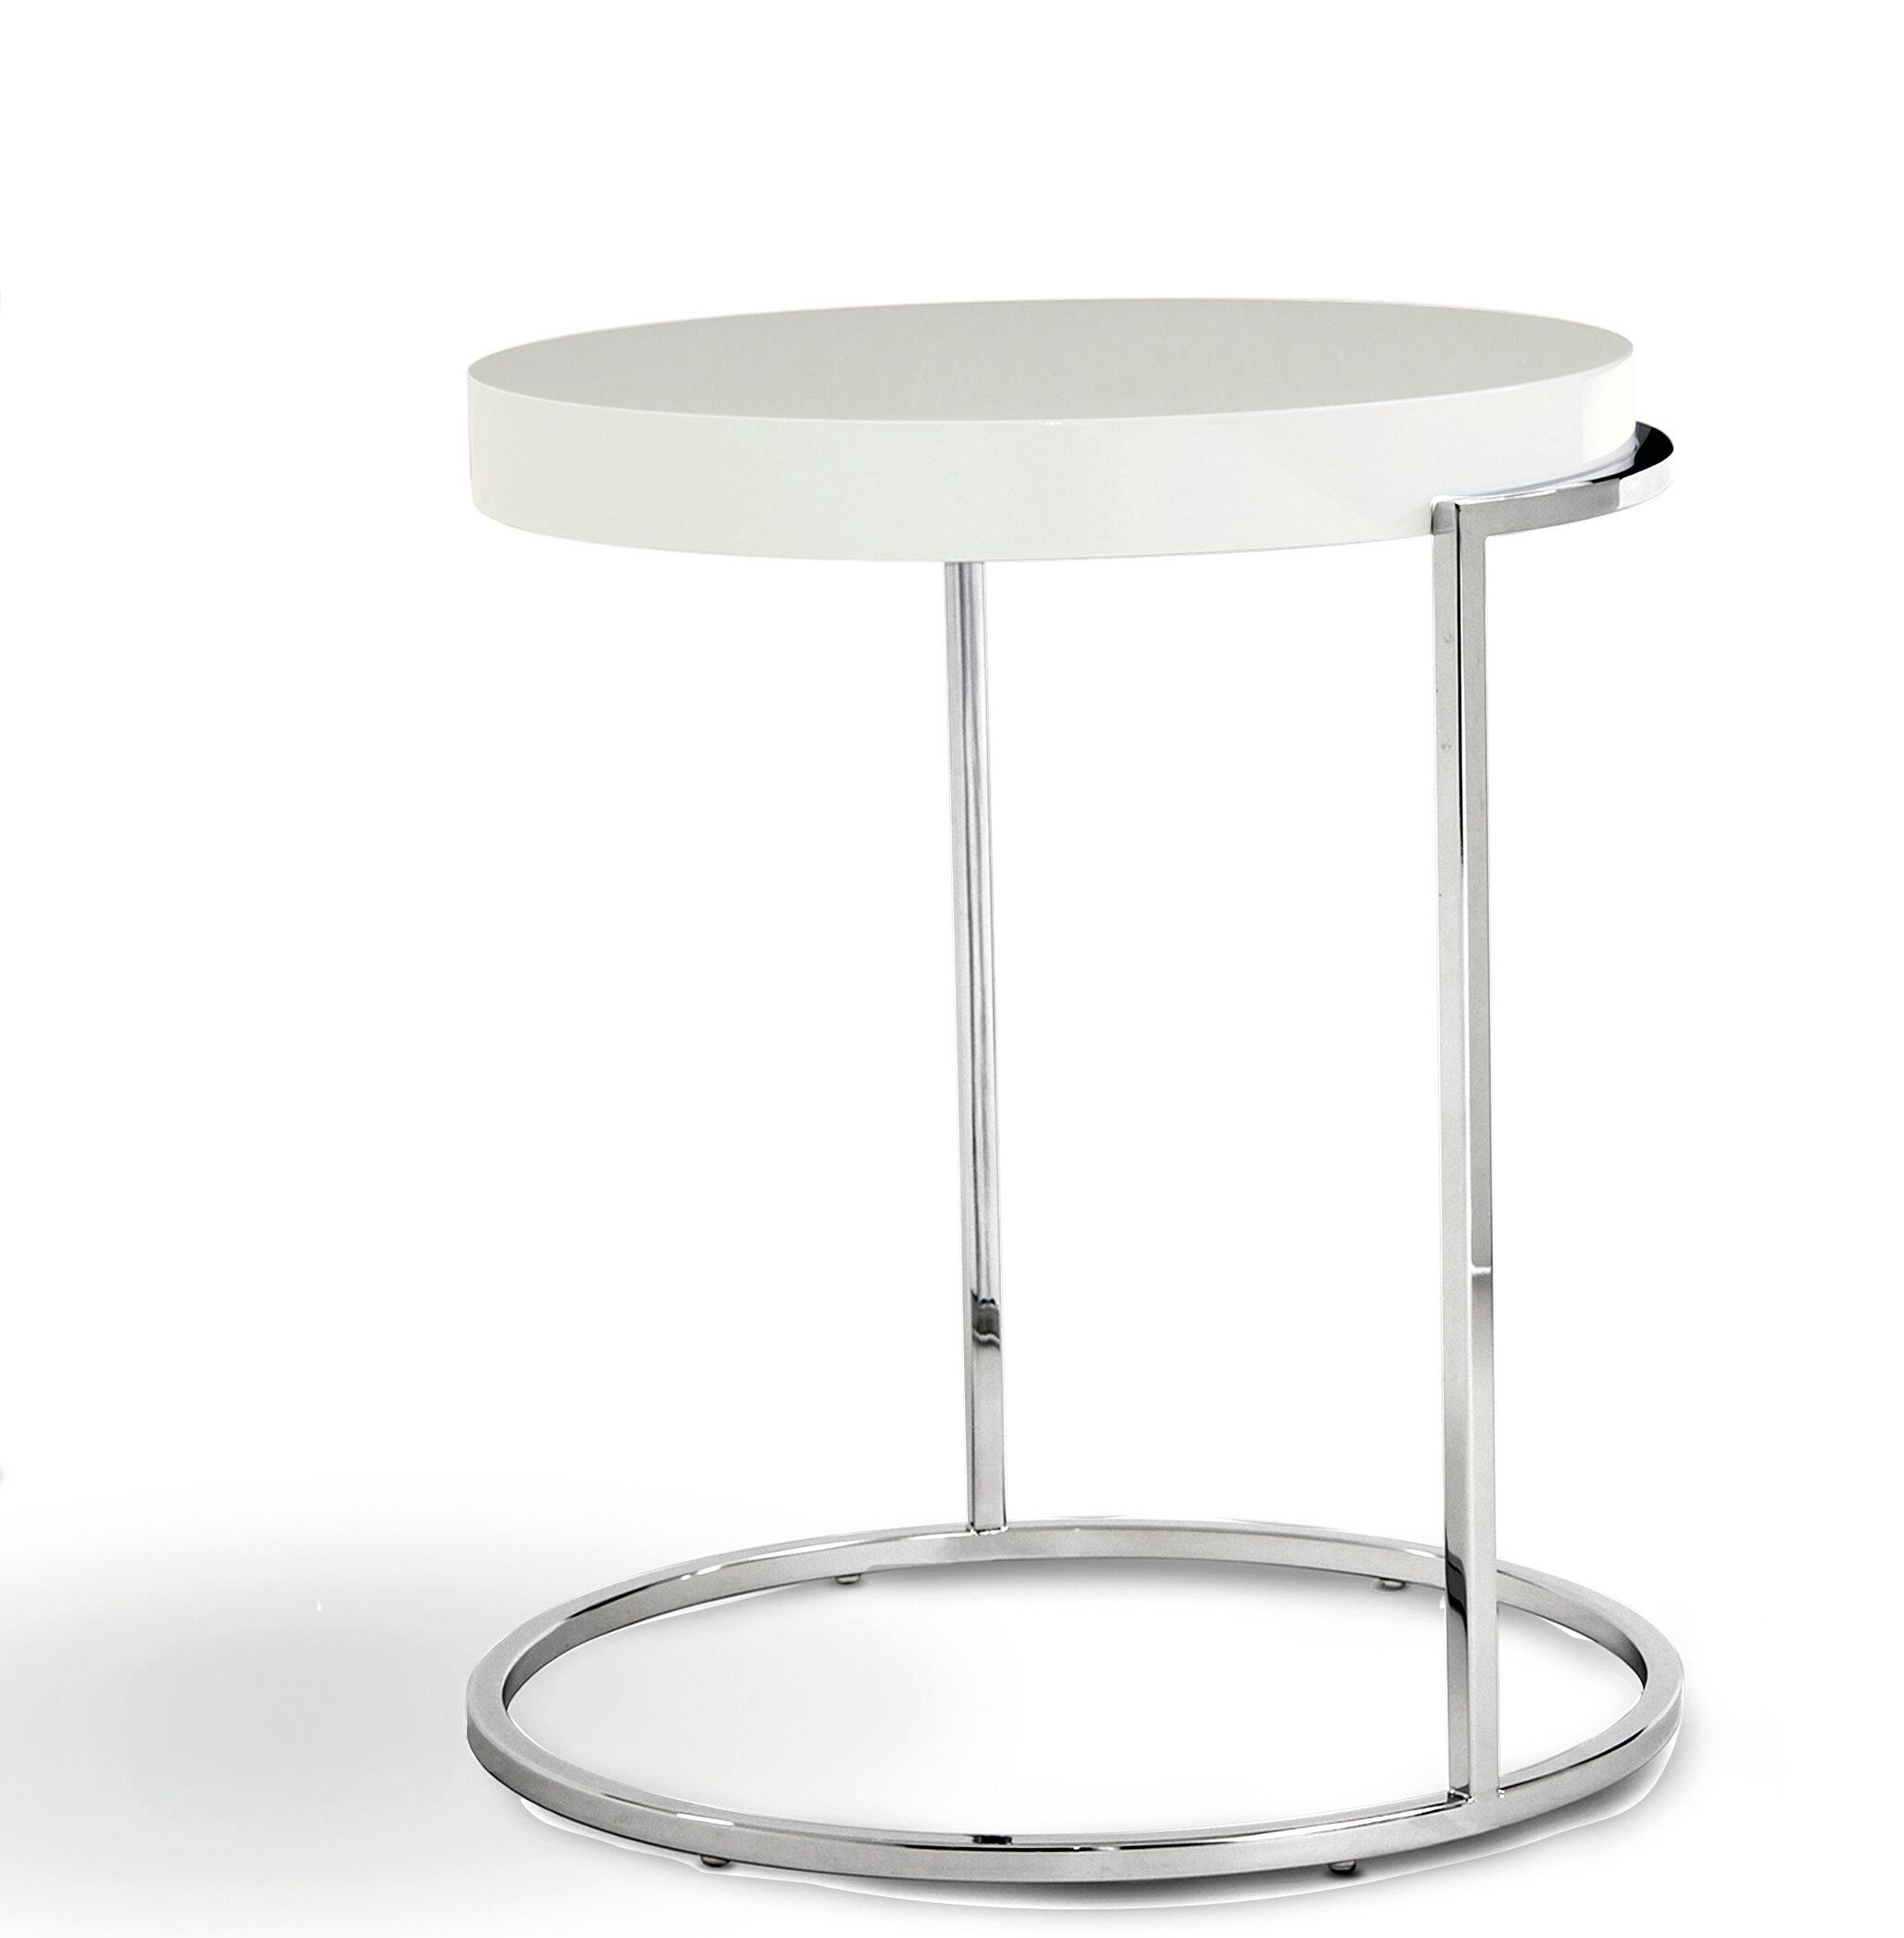 Servoquadro Round Coffee Table Table Base Color: Chrome, Table Top Color: High Gloss White